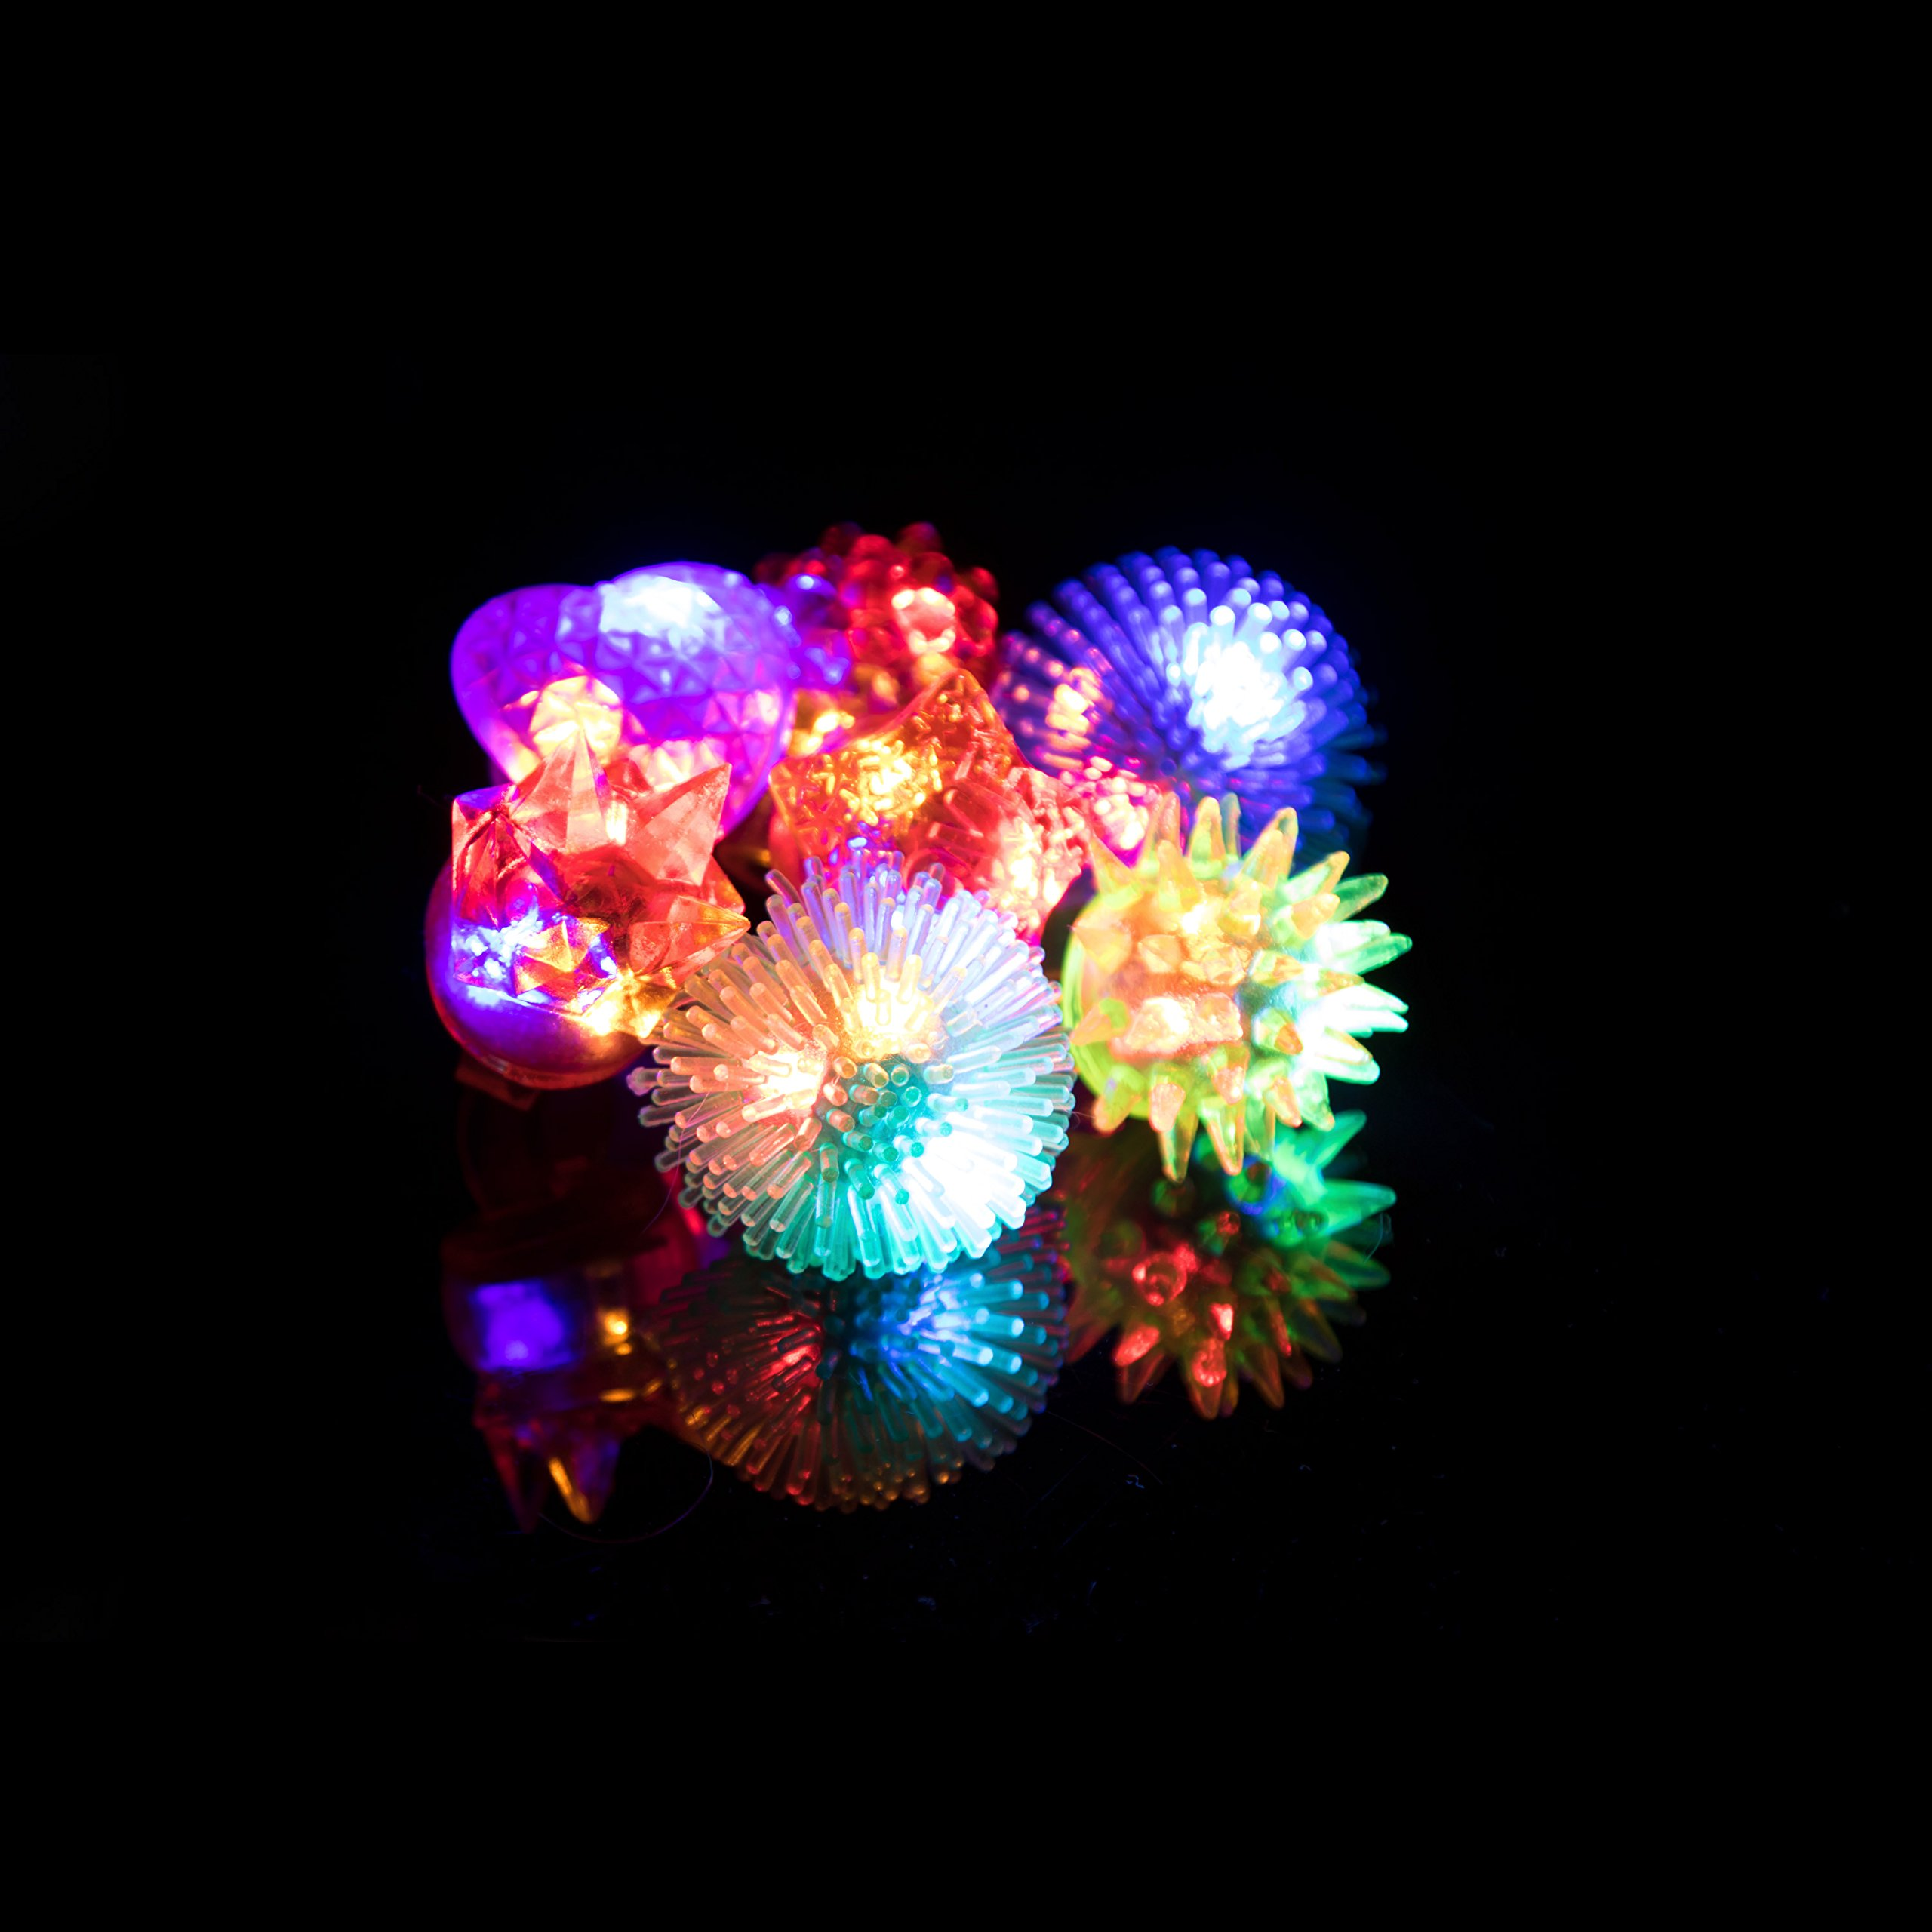 LED Party Favors for Kids – 36 Pc LED Glow in The Dark Jelly Rings Party Favors Bulk Glow in The Dark Party Supplies in Assorted LED Ring Colors by PartySticks (Image #6)